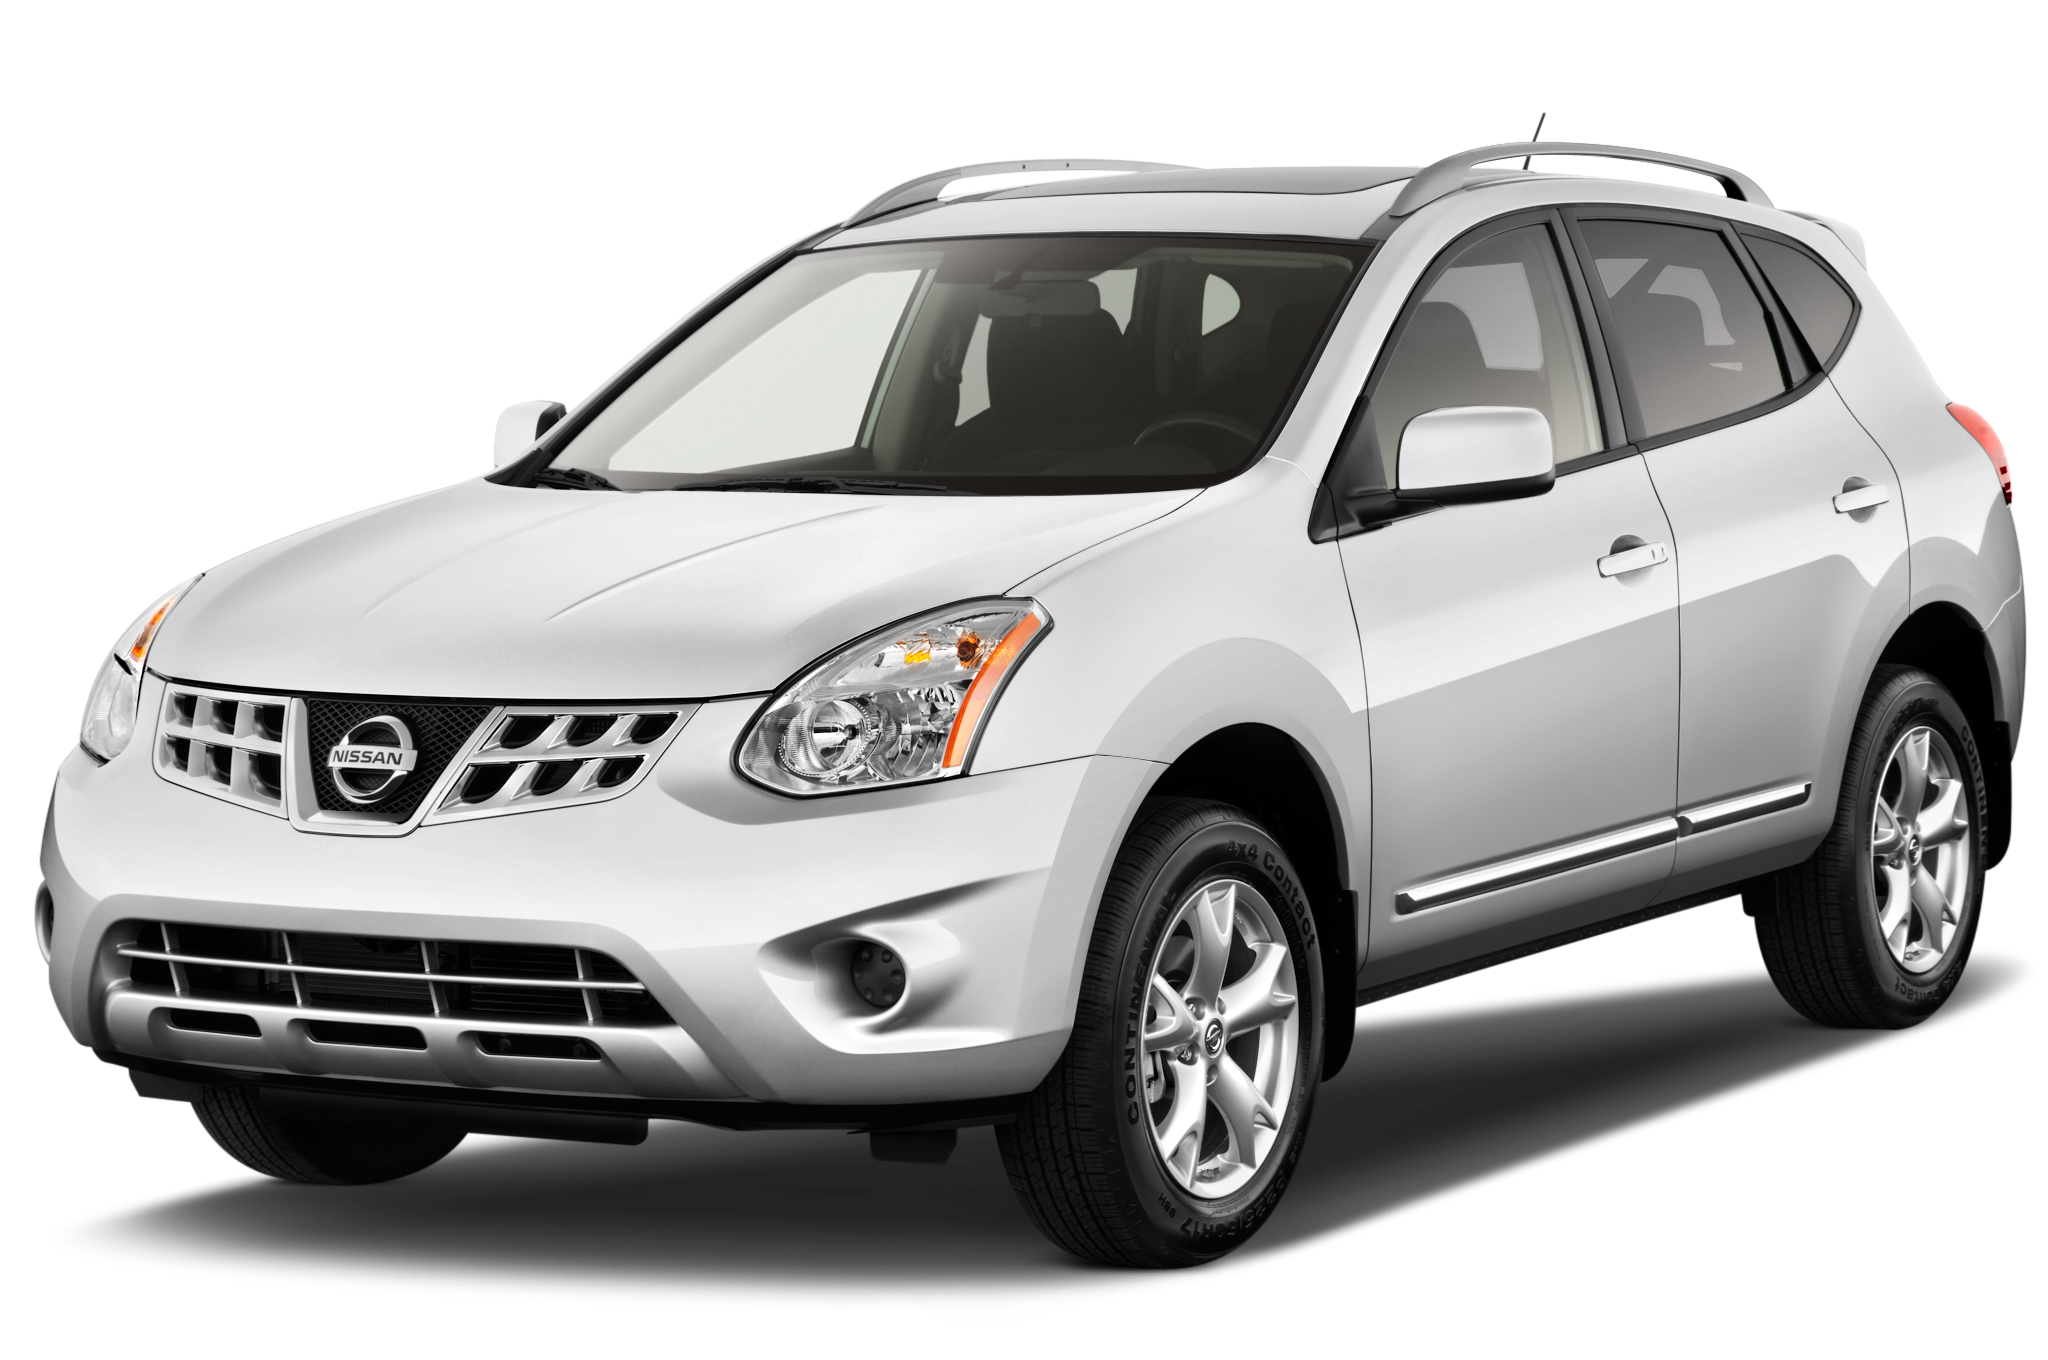 Nissan Prices 2013 Rogue At 23 135 Less Than Almost